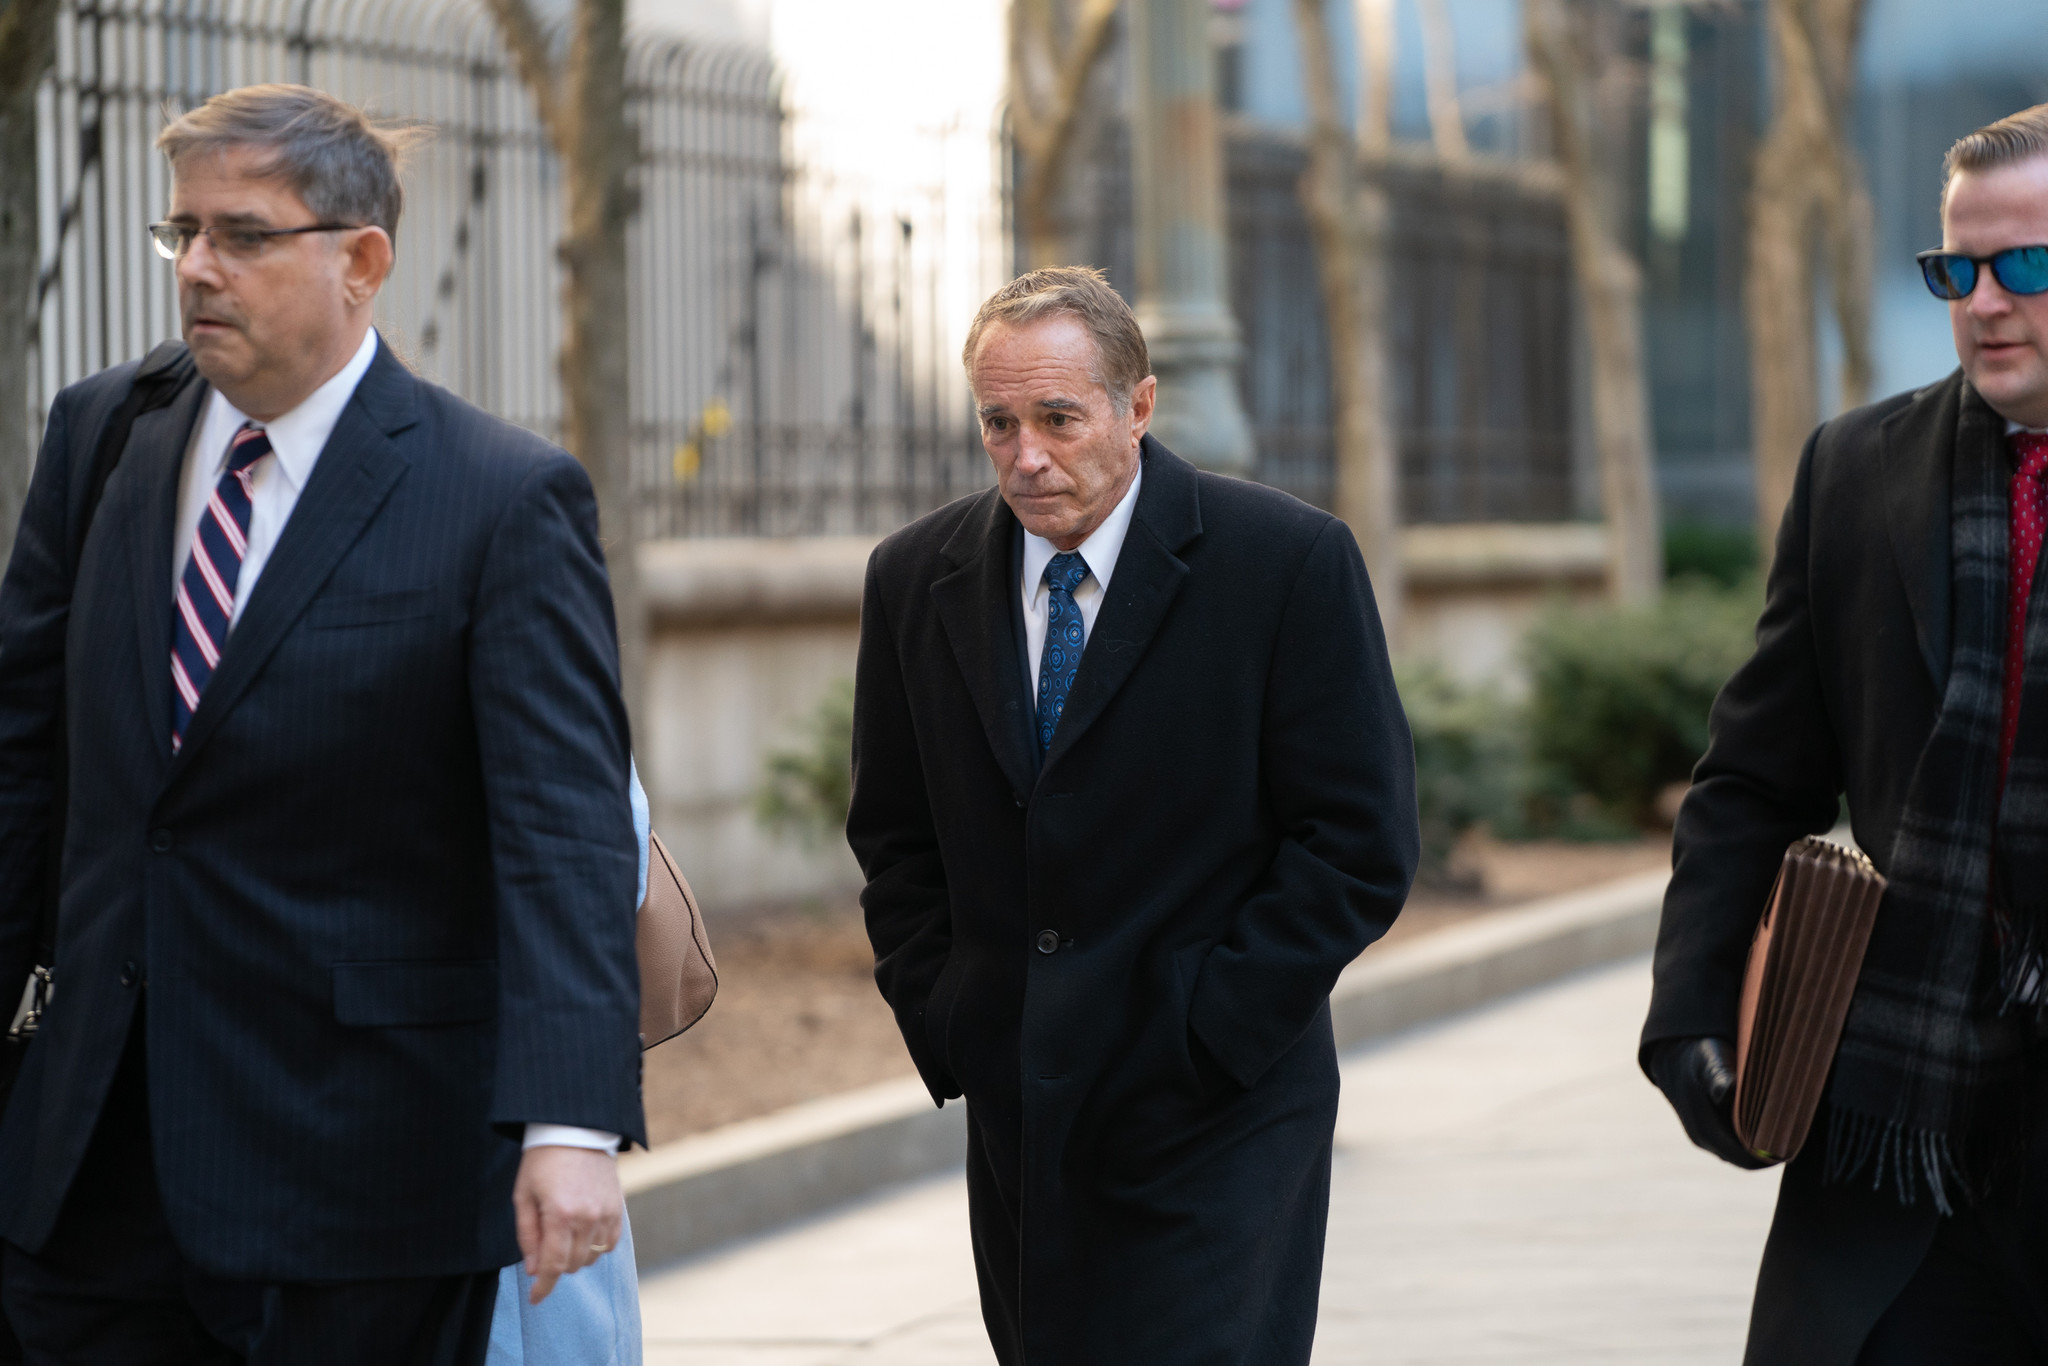 Ex-Congressman Chris Collins sentenced to 26 months for insider trading